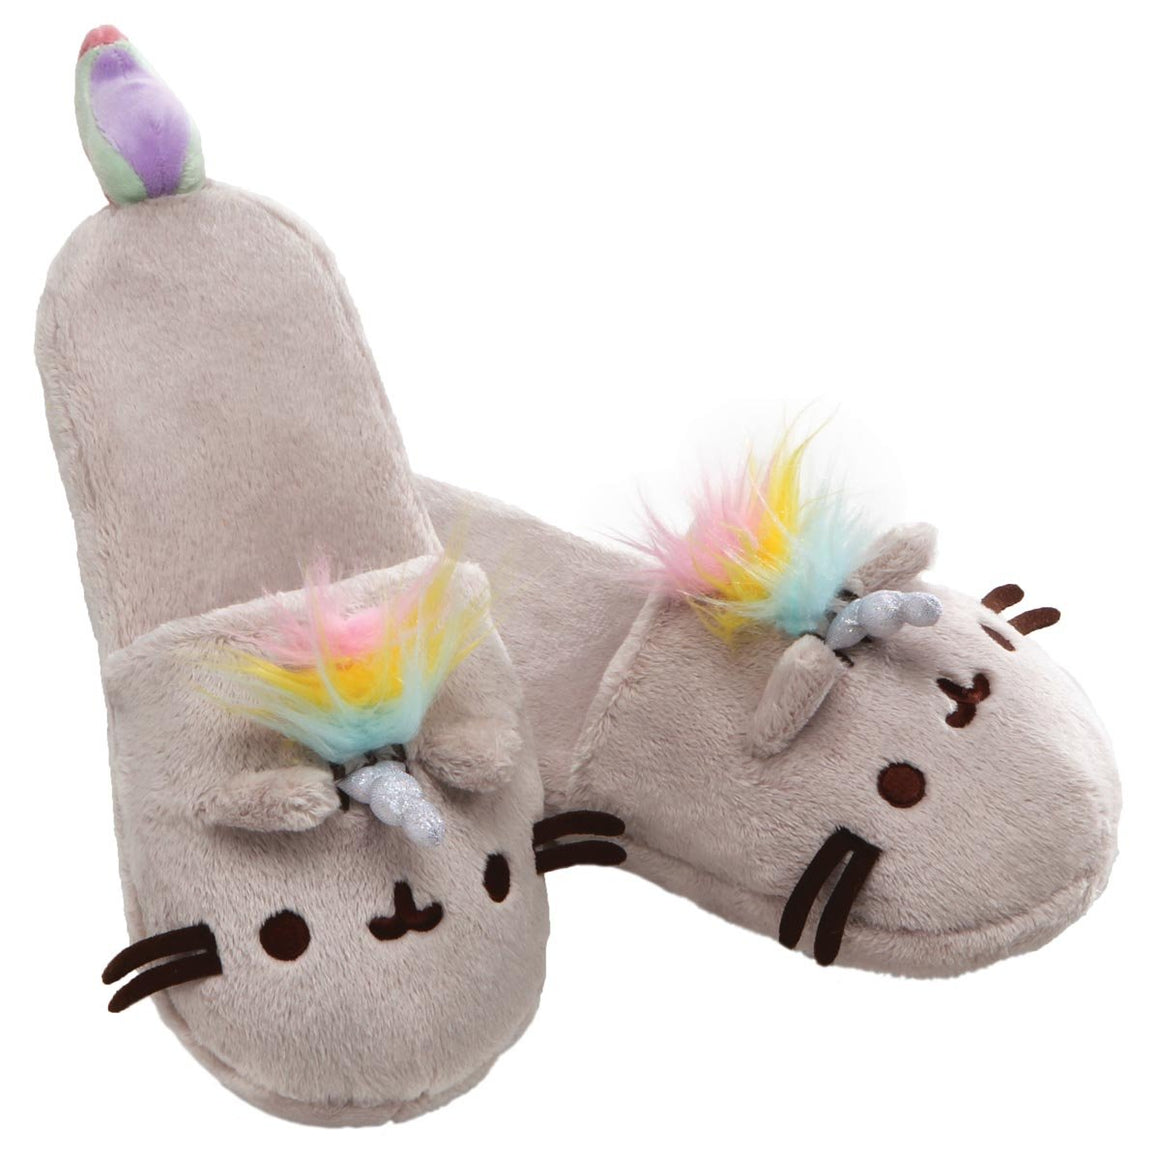 Pusheenicorn Super Soft Adult Slippers With Sparkly Horn